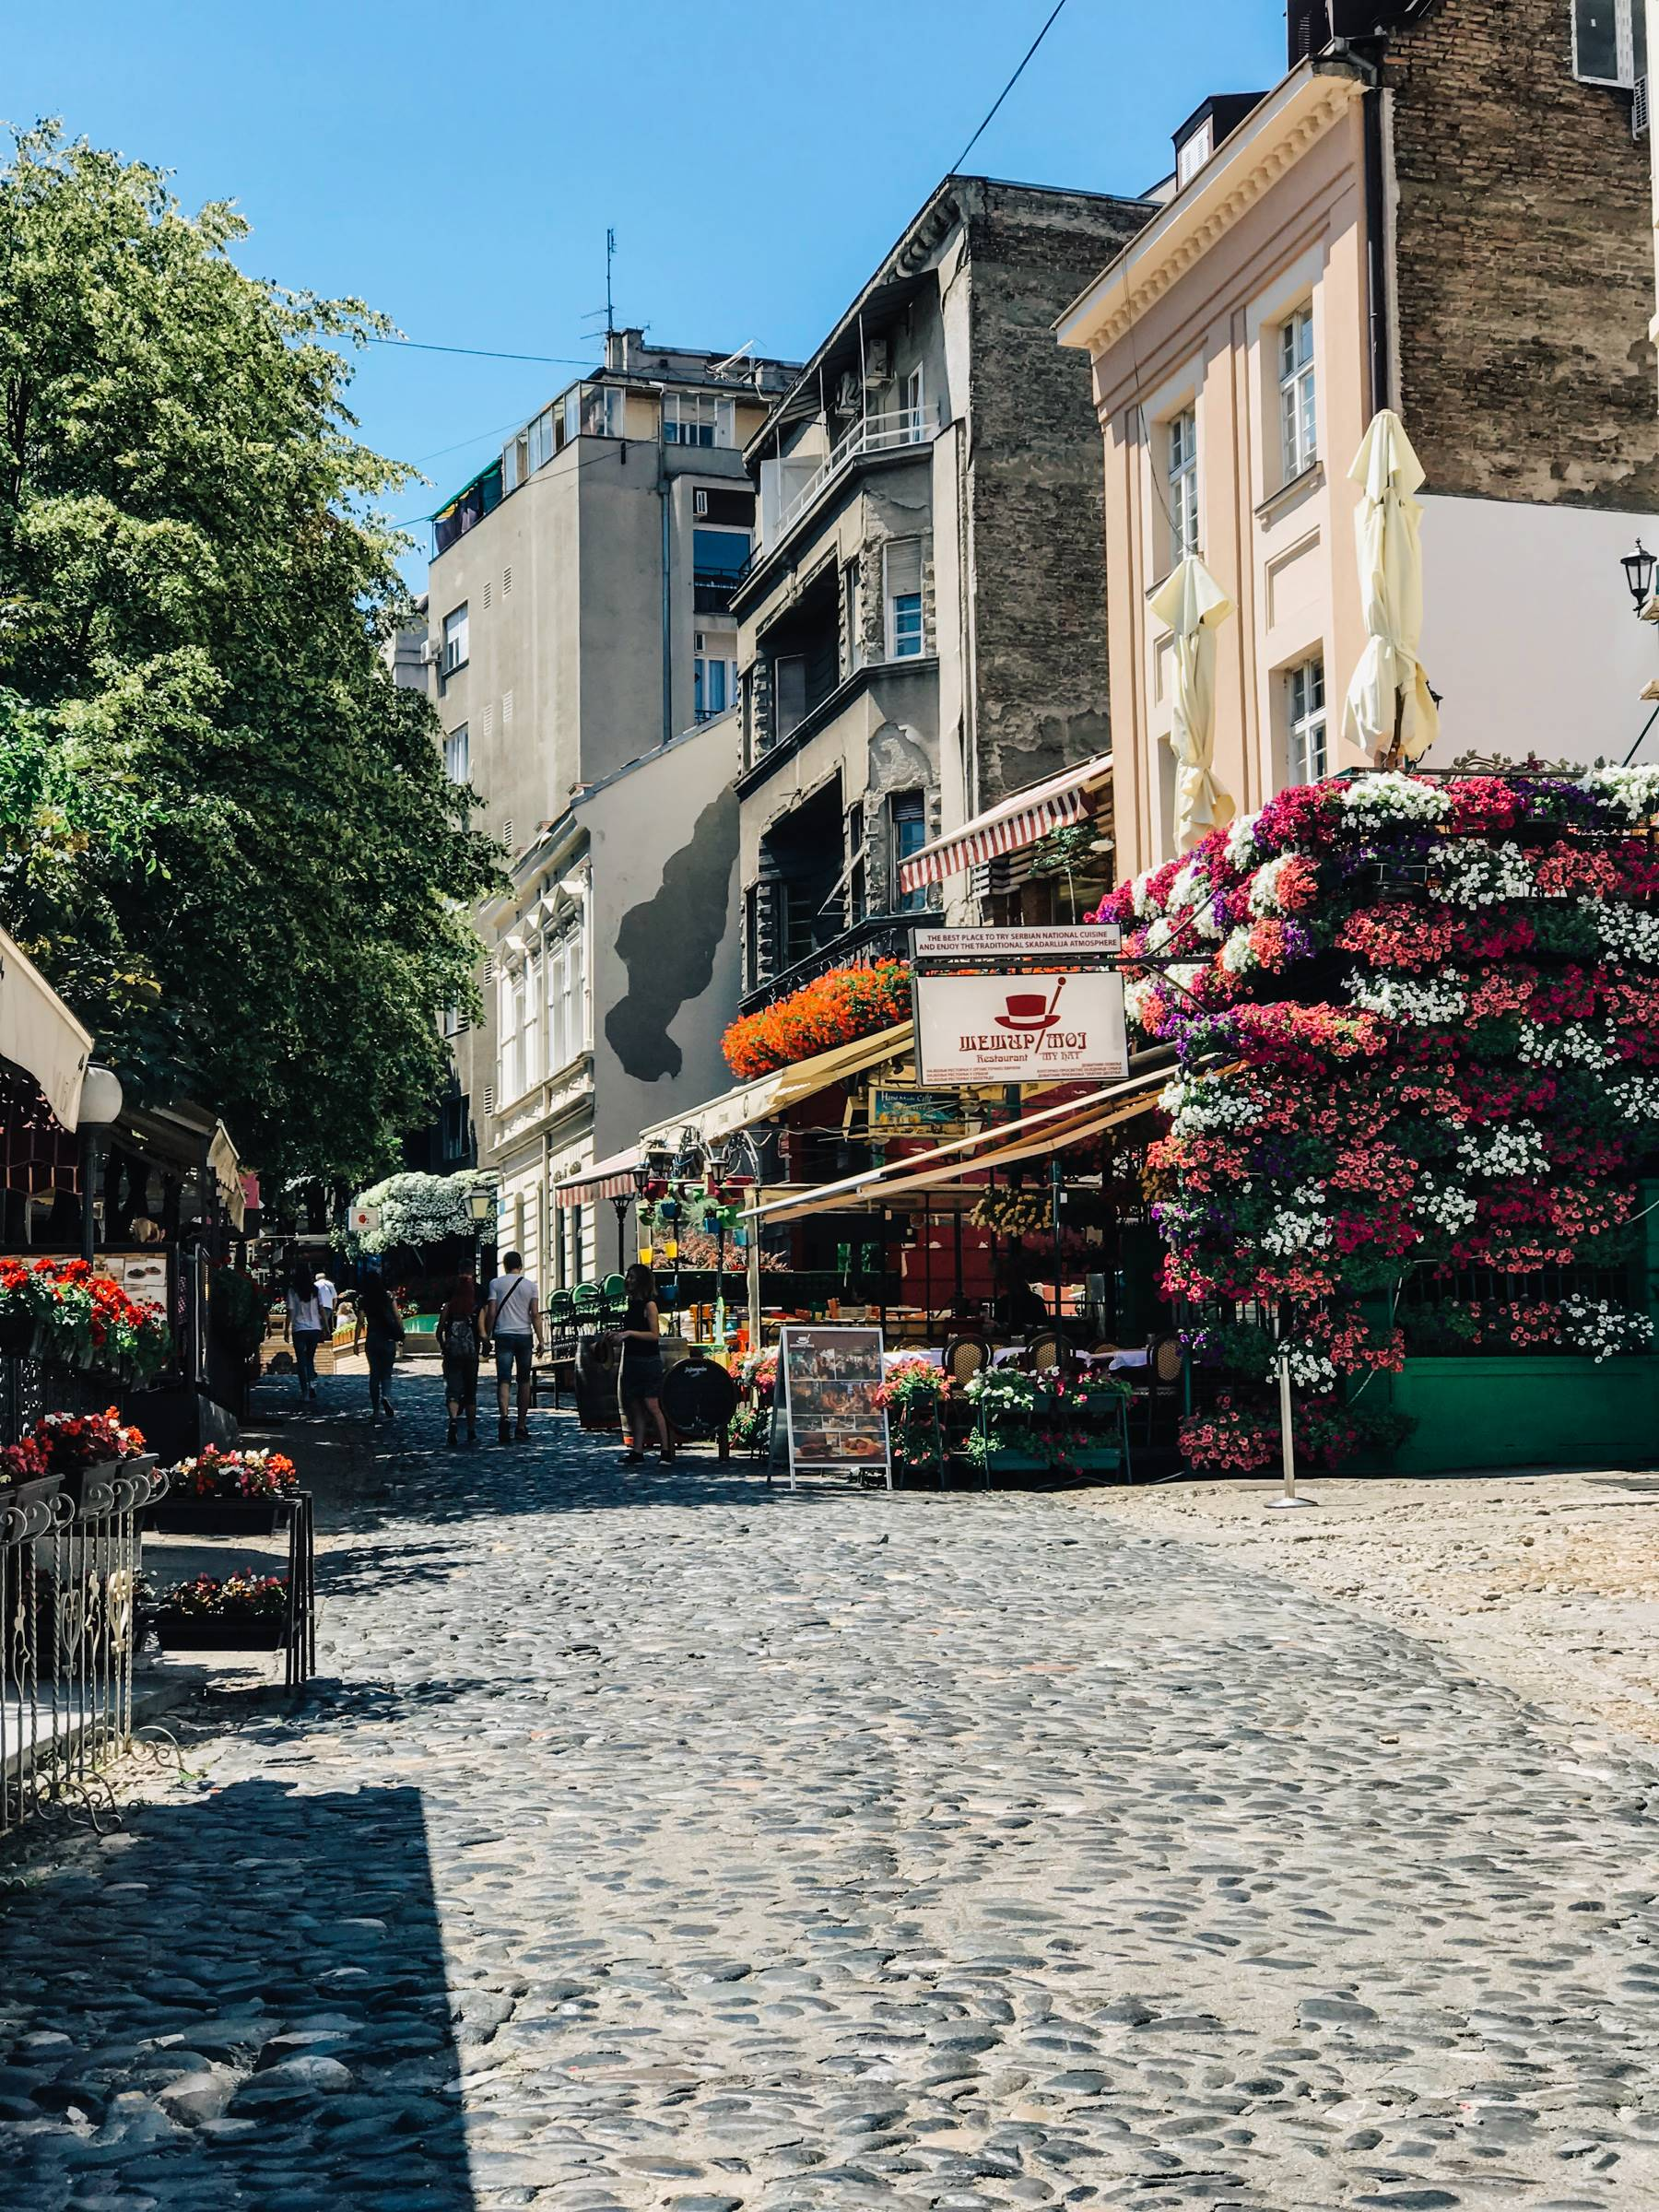 While Belgrade is not quintessentially beautiful like some other European capitals, it has its own charm deeply rooted in history, and shouldn't be missed! Read more at www.thefivefoottraveler.com